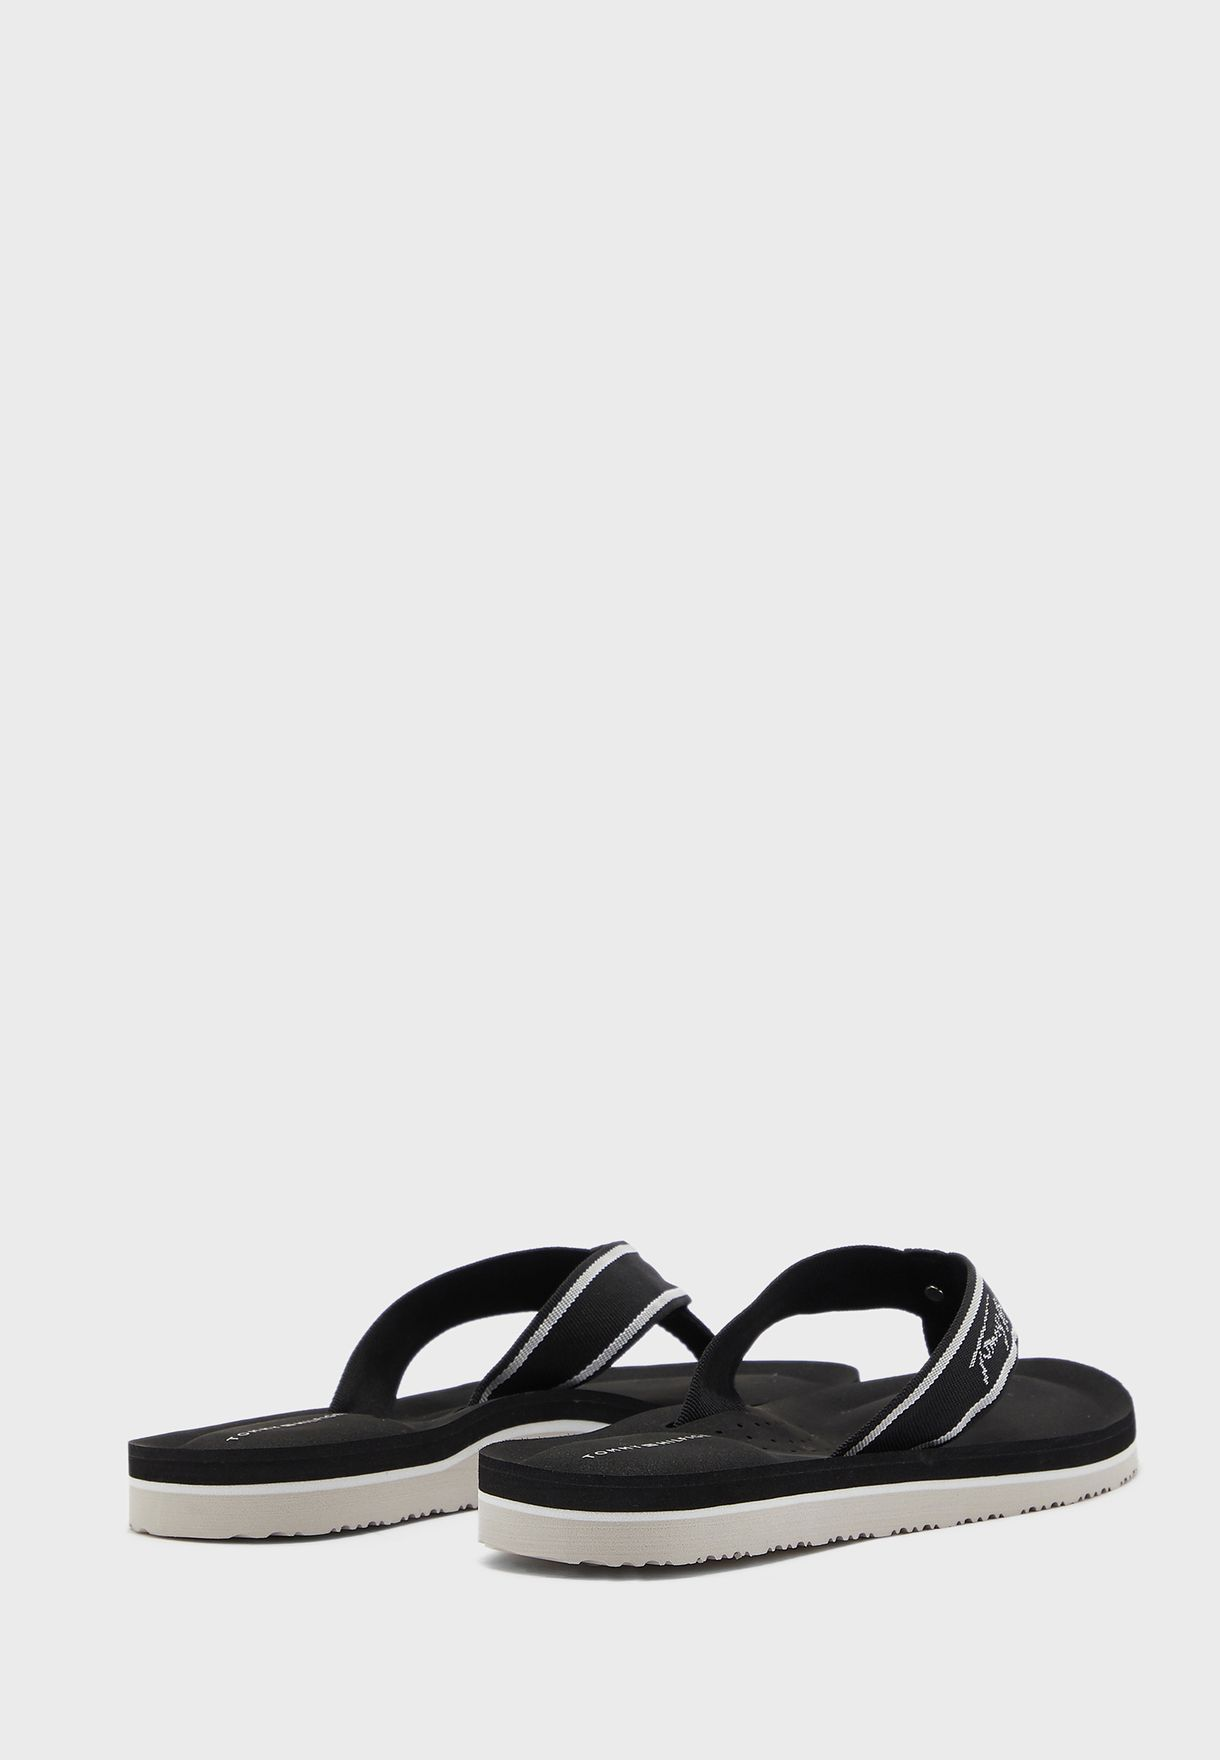 Comfort Footbed Thong